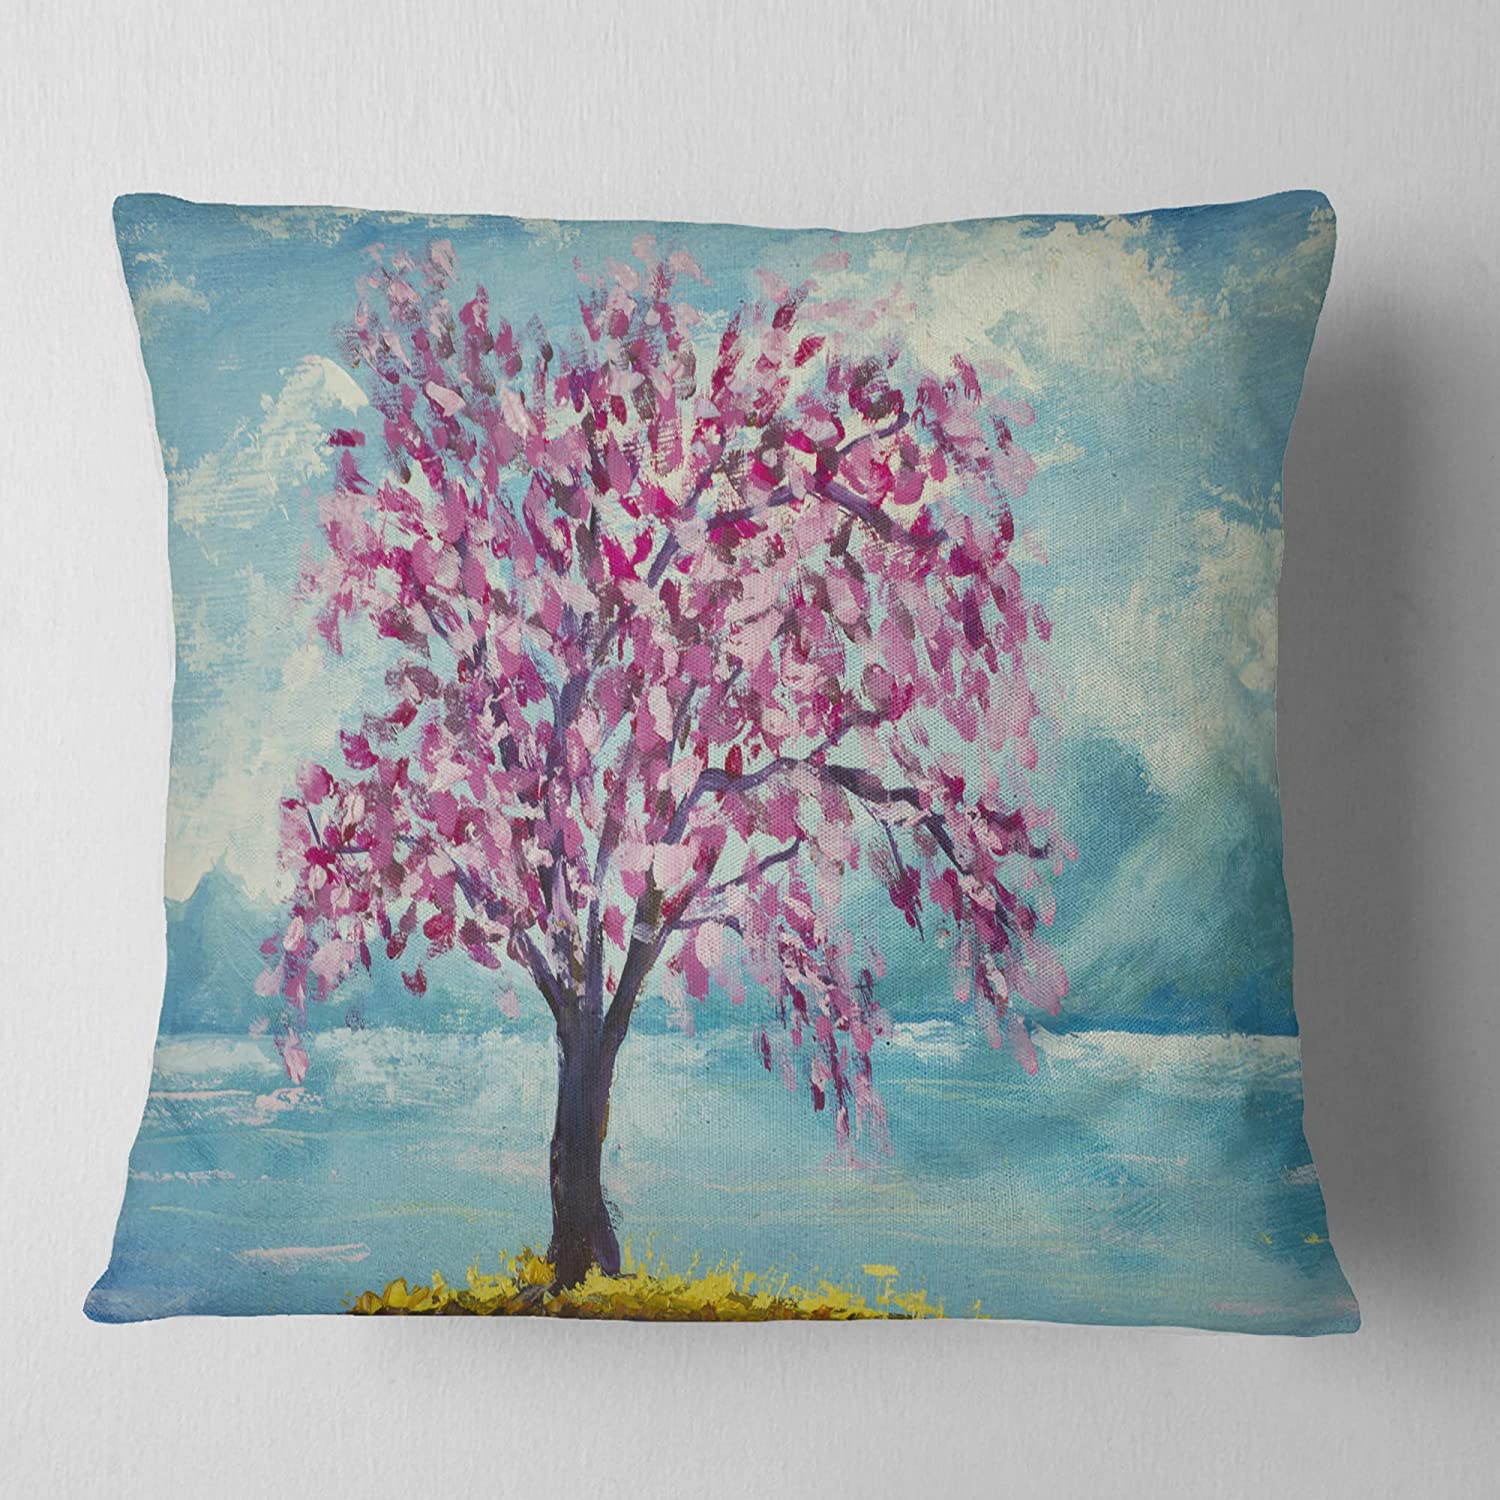 ArtVerse Katelyn Smith 26 x 26 Poly Twill Double Sided Print with Concealed Zipper /& Insert North Carolina Love Watercolor Pillow